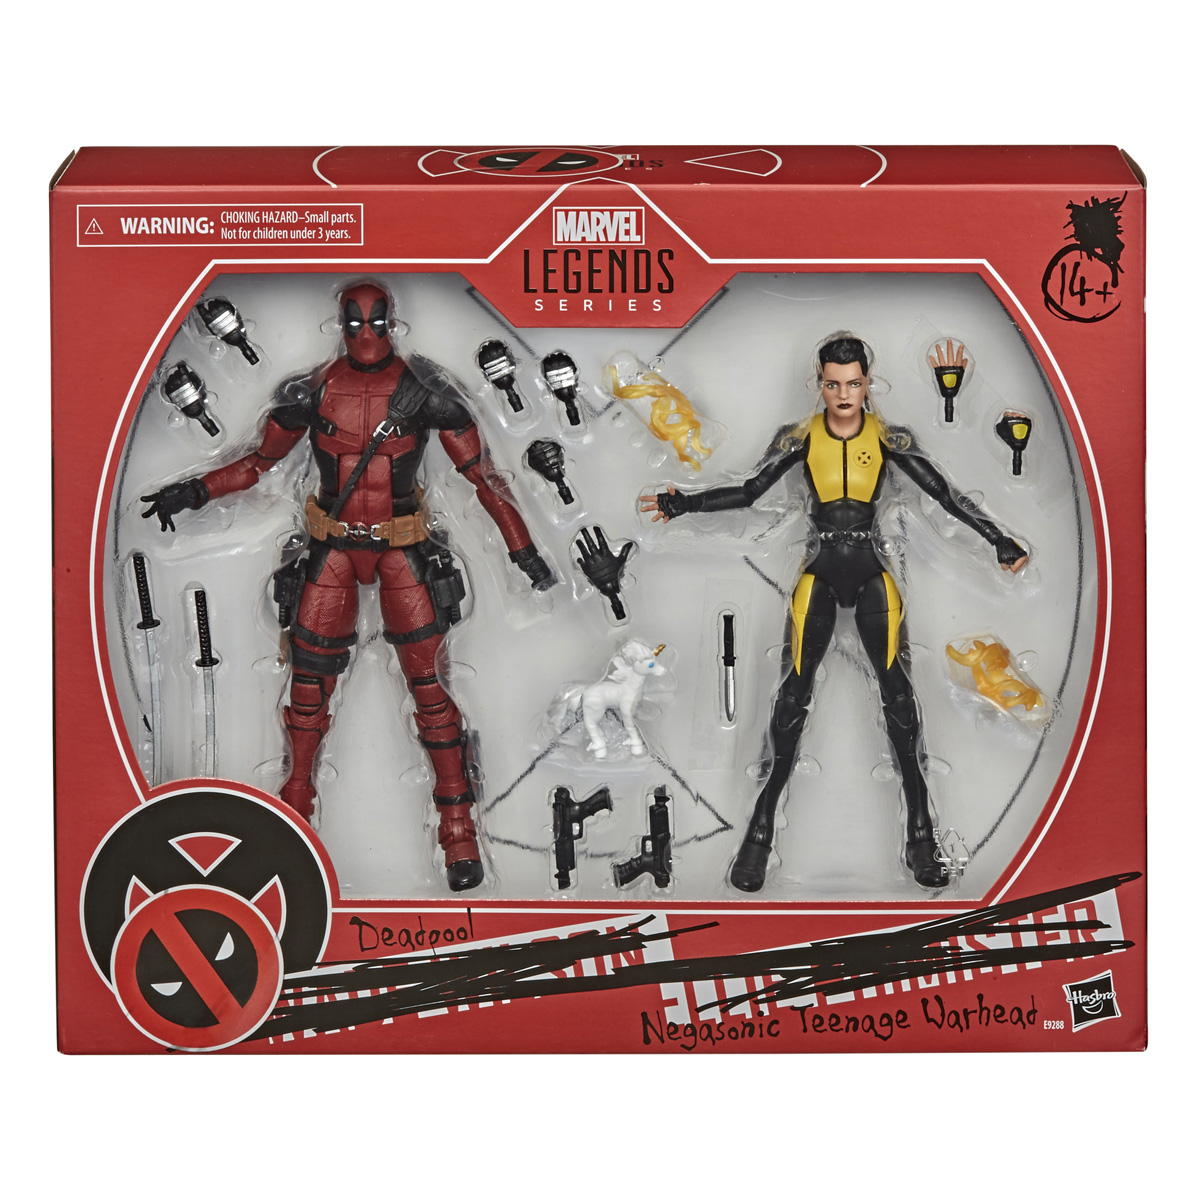 marvel-legends-series-6-inch-deadpool-and-negasonic-teenage-warhead-figure-2-pack-in-pck